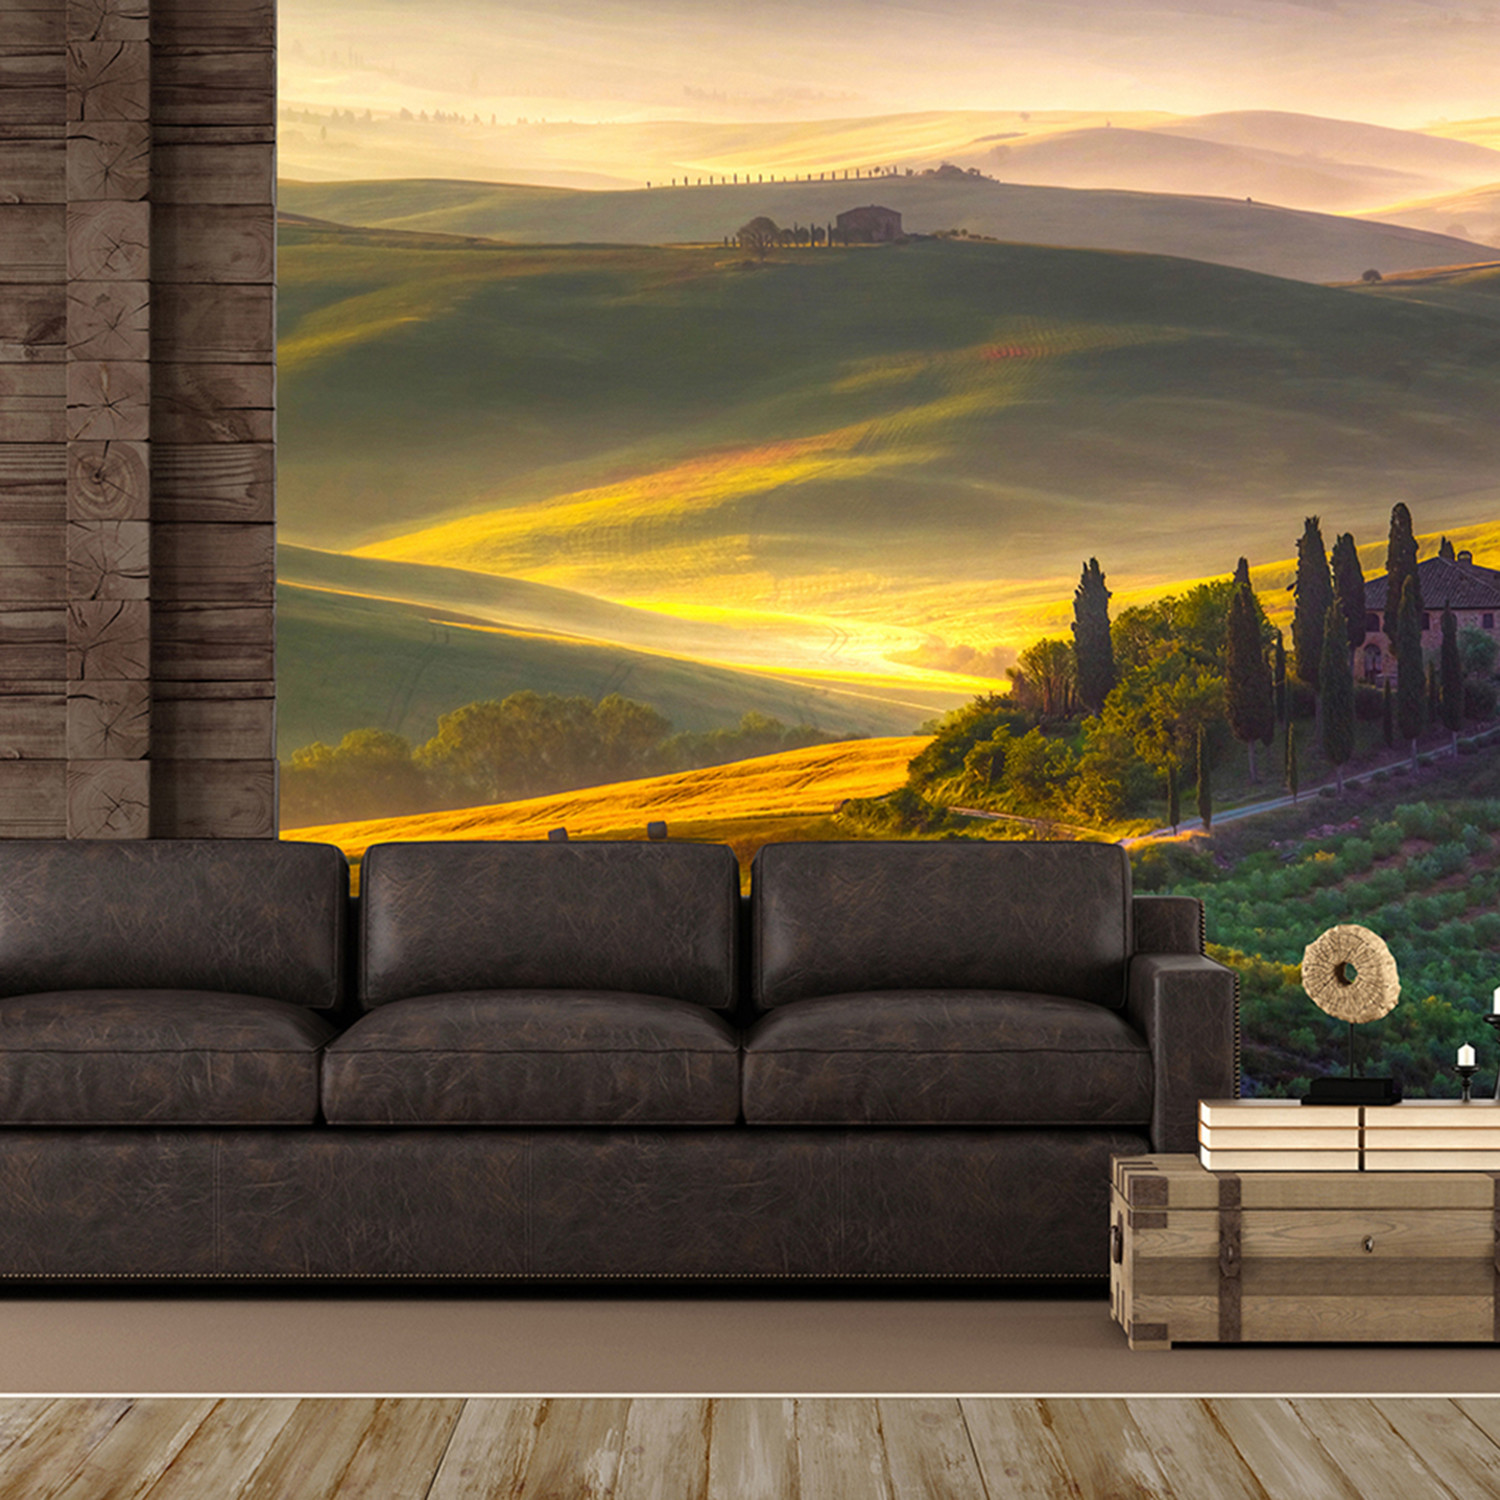 Toscana wall mural brewster home fashions touch of modern for Brewster wall mural